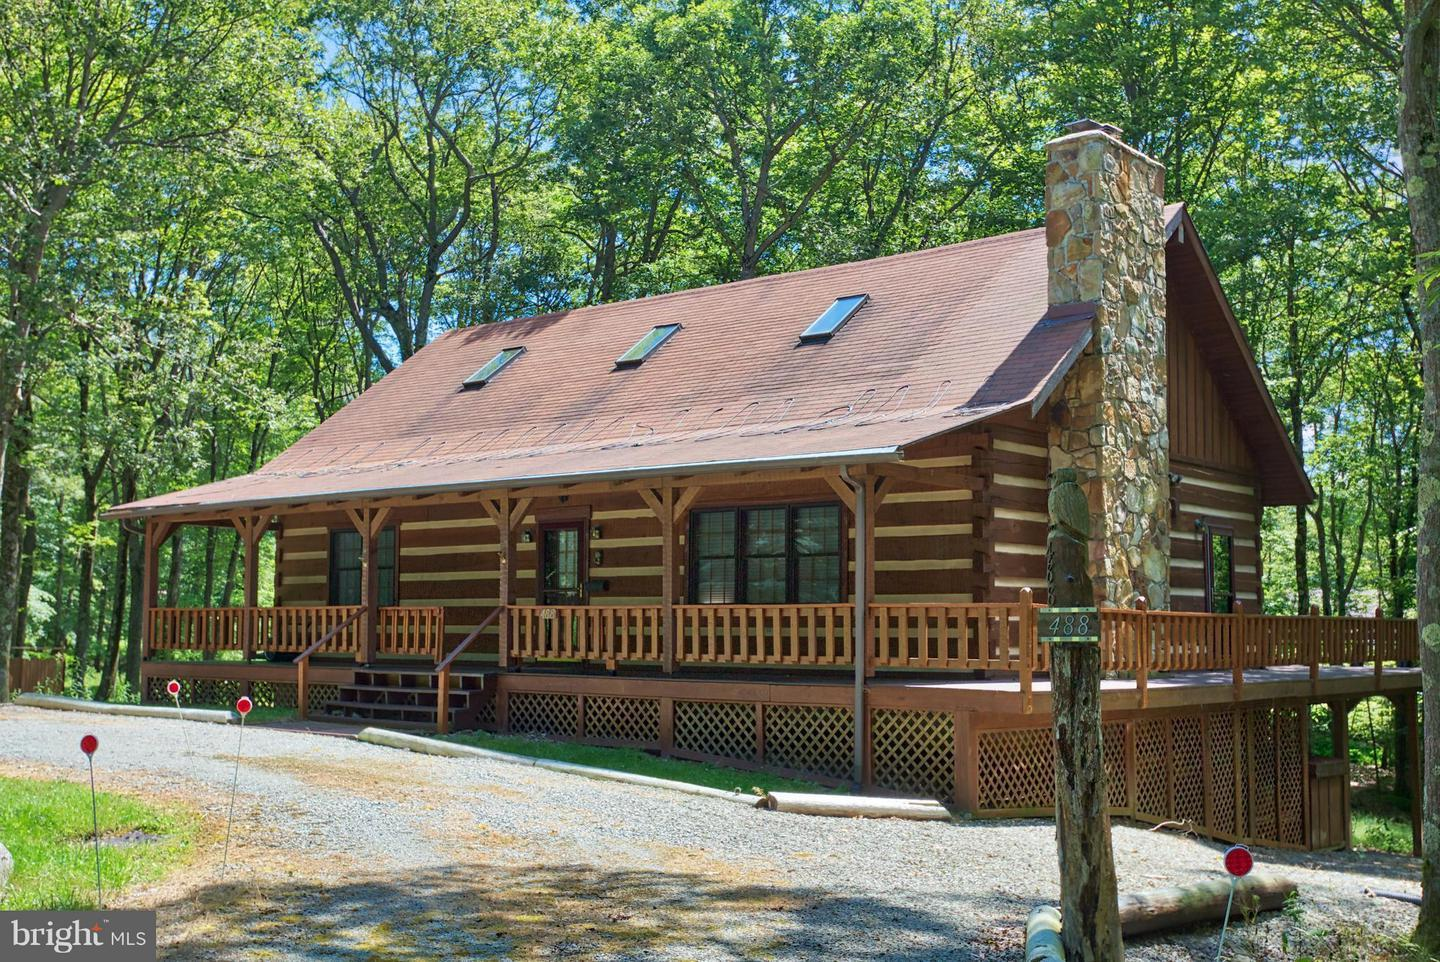 Local Real Estate: Foreclosures for Sale — Terra Alta, WV — Coldwell ...